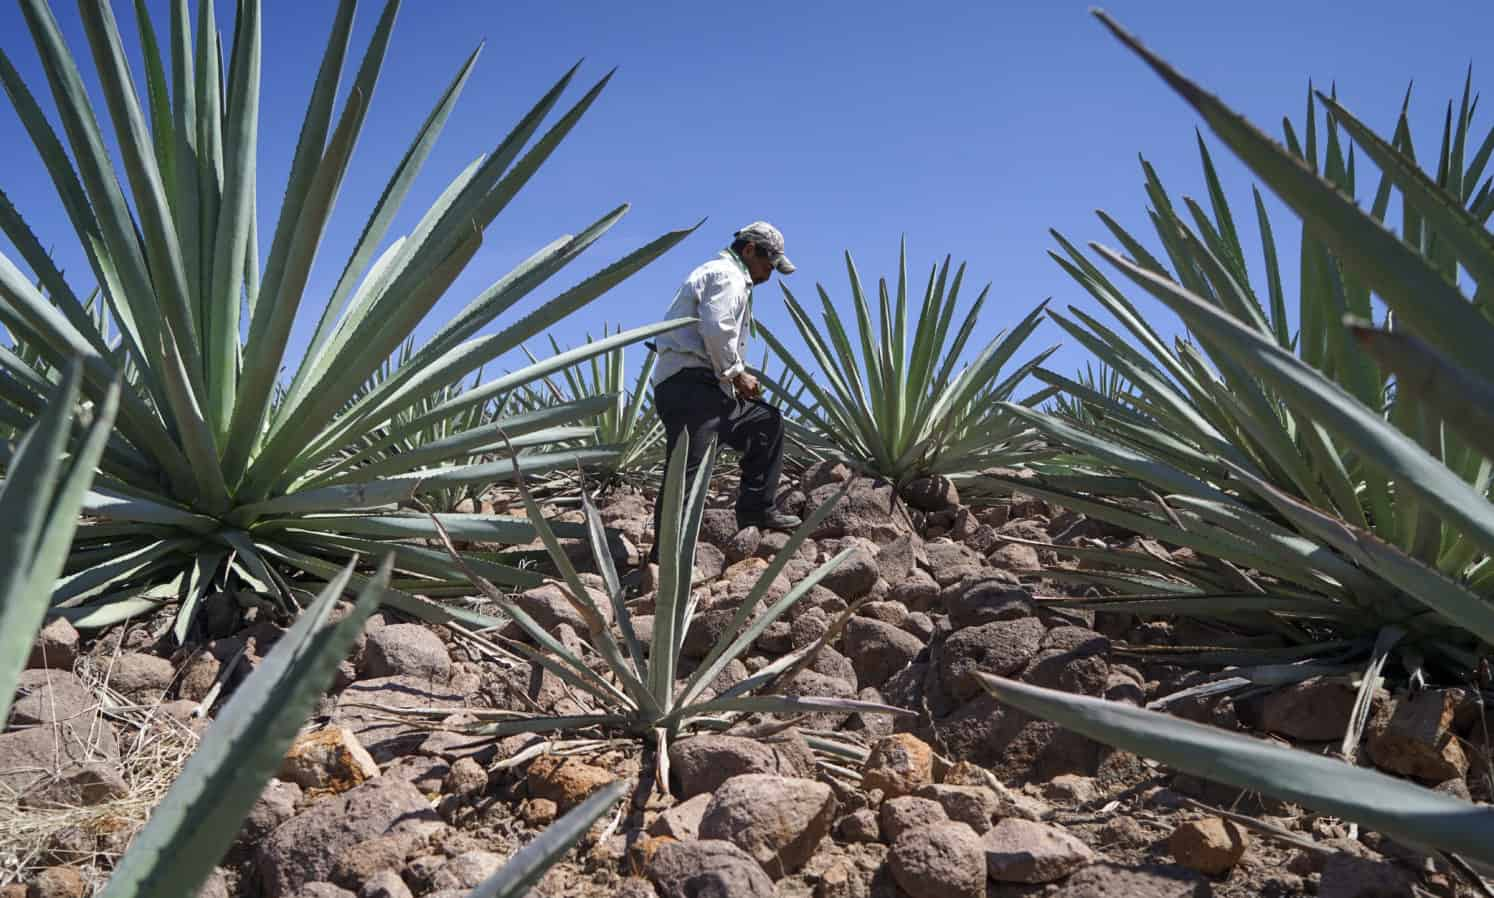 Sombra Mezcal Founder Richard Betts discusses the environmental impact of mezcal production and how he aims to make it more sustainable.